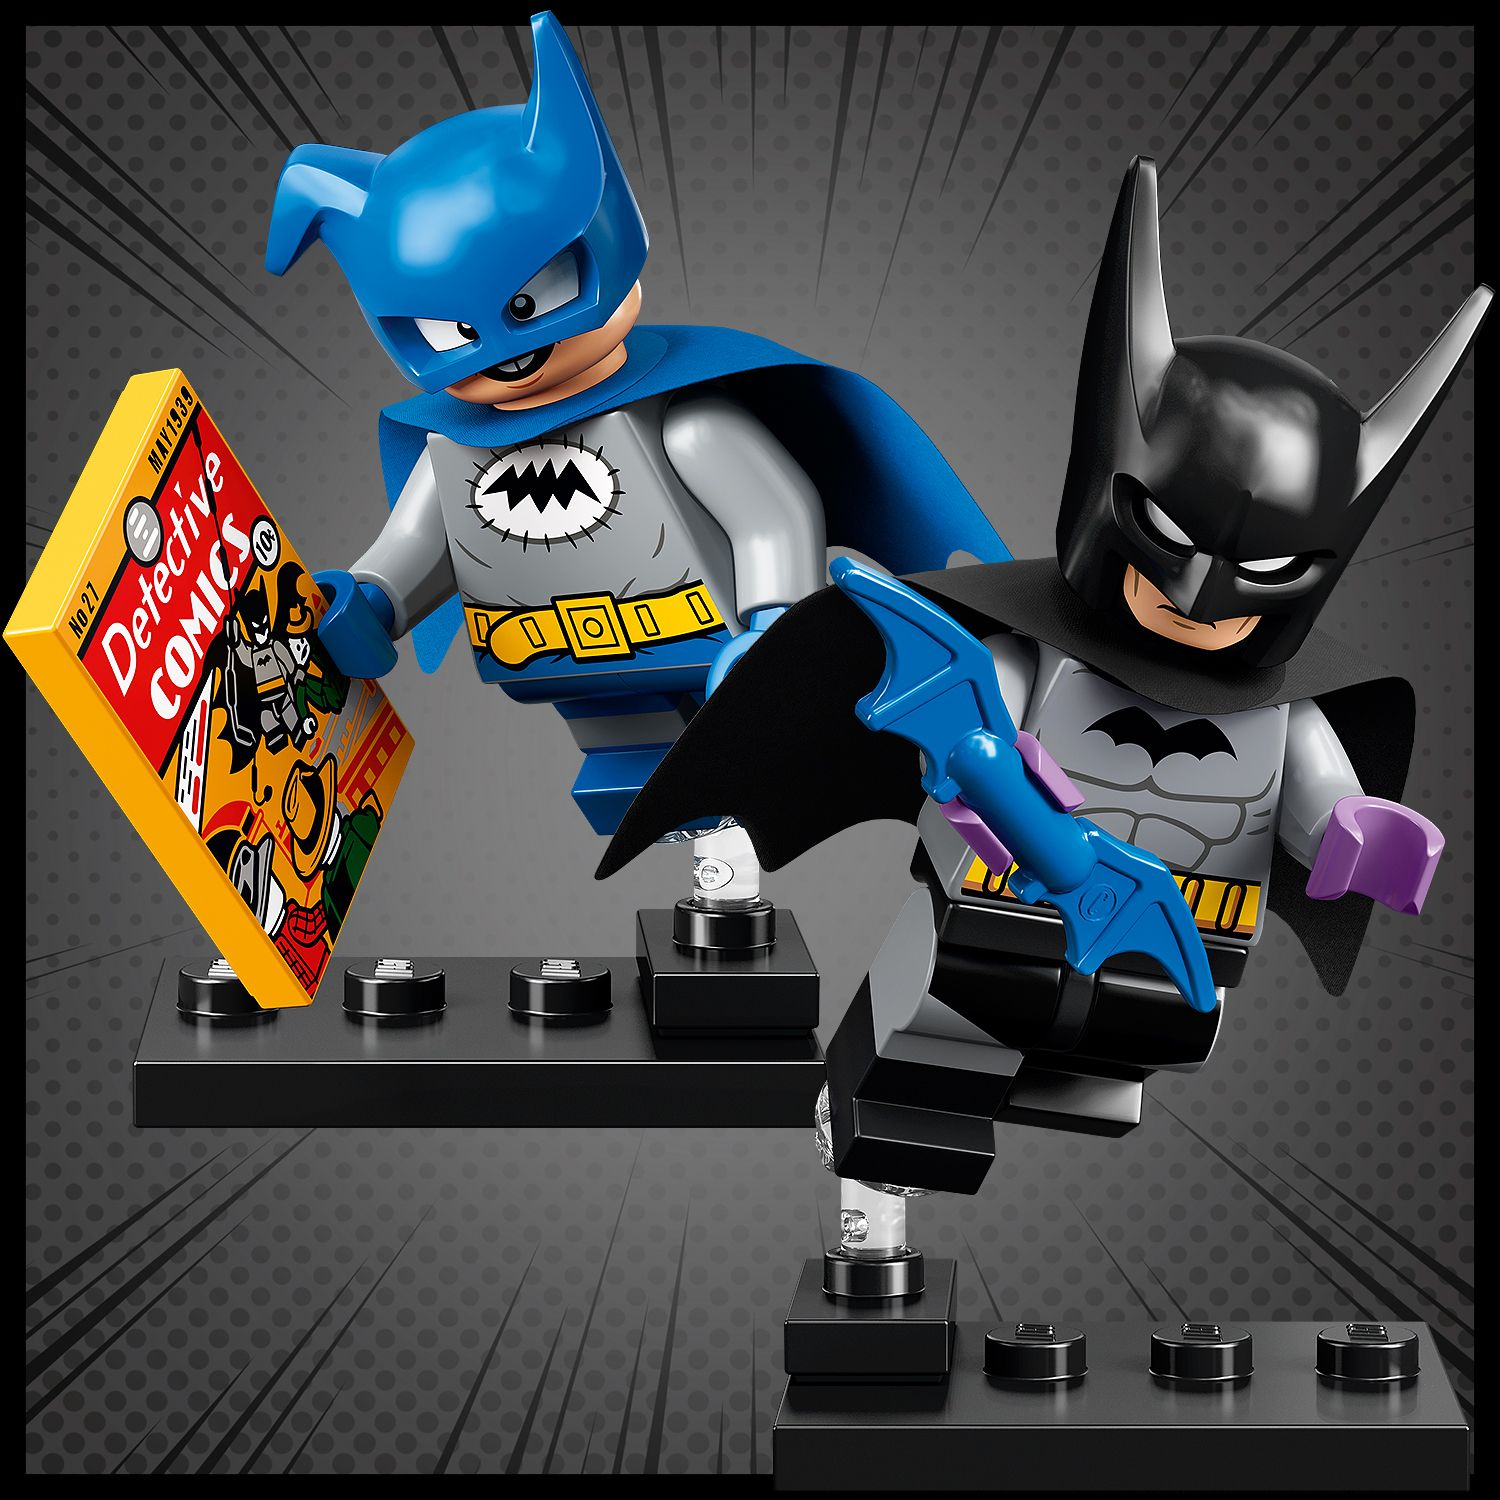 LEGO Collectable Minifigures 71026 LEGO® DC Super Heroes Series - 2 x 30er Box LEGO_71026_alt6.jpg